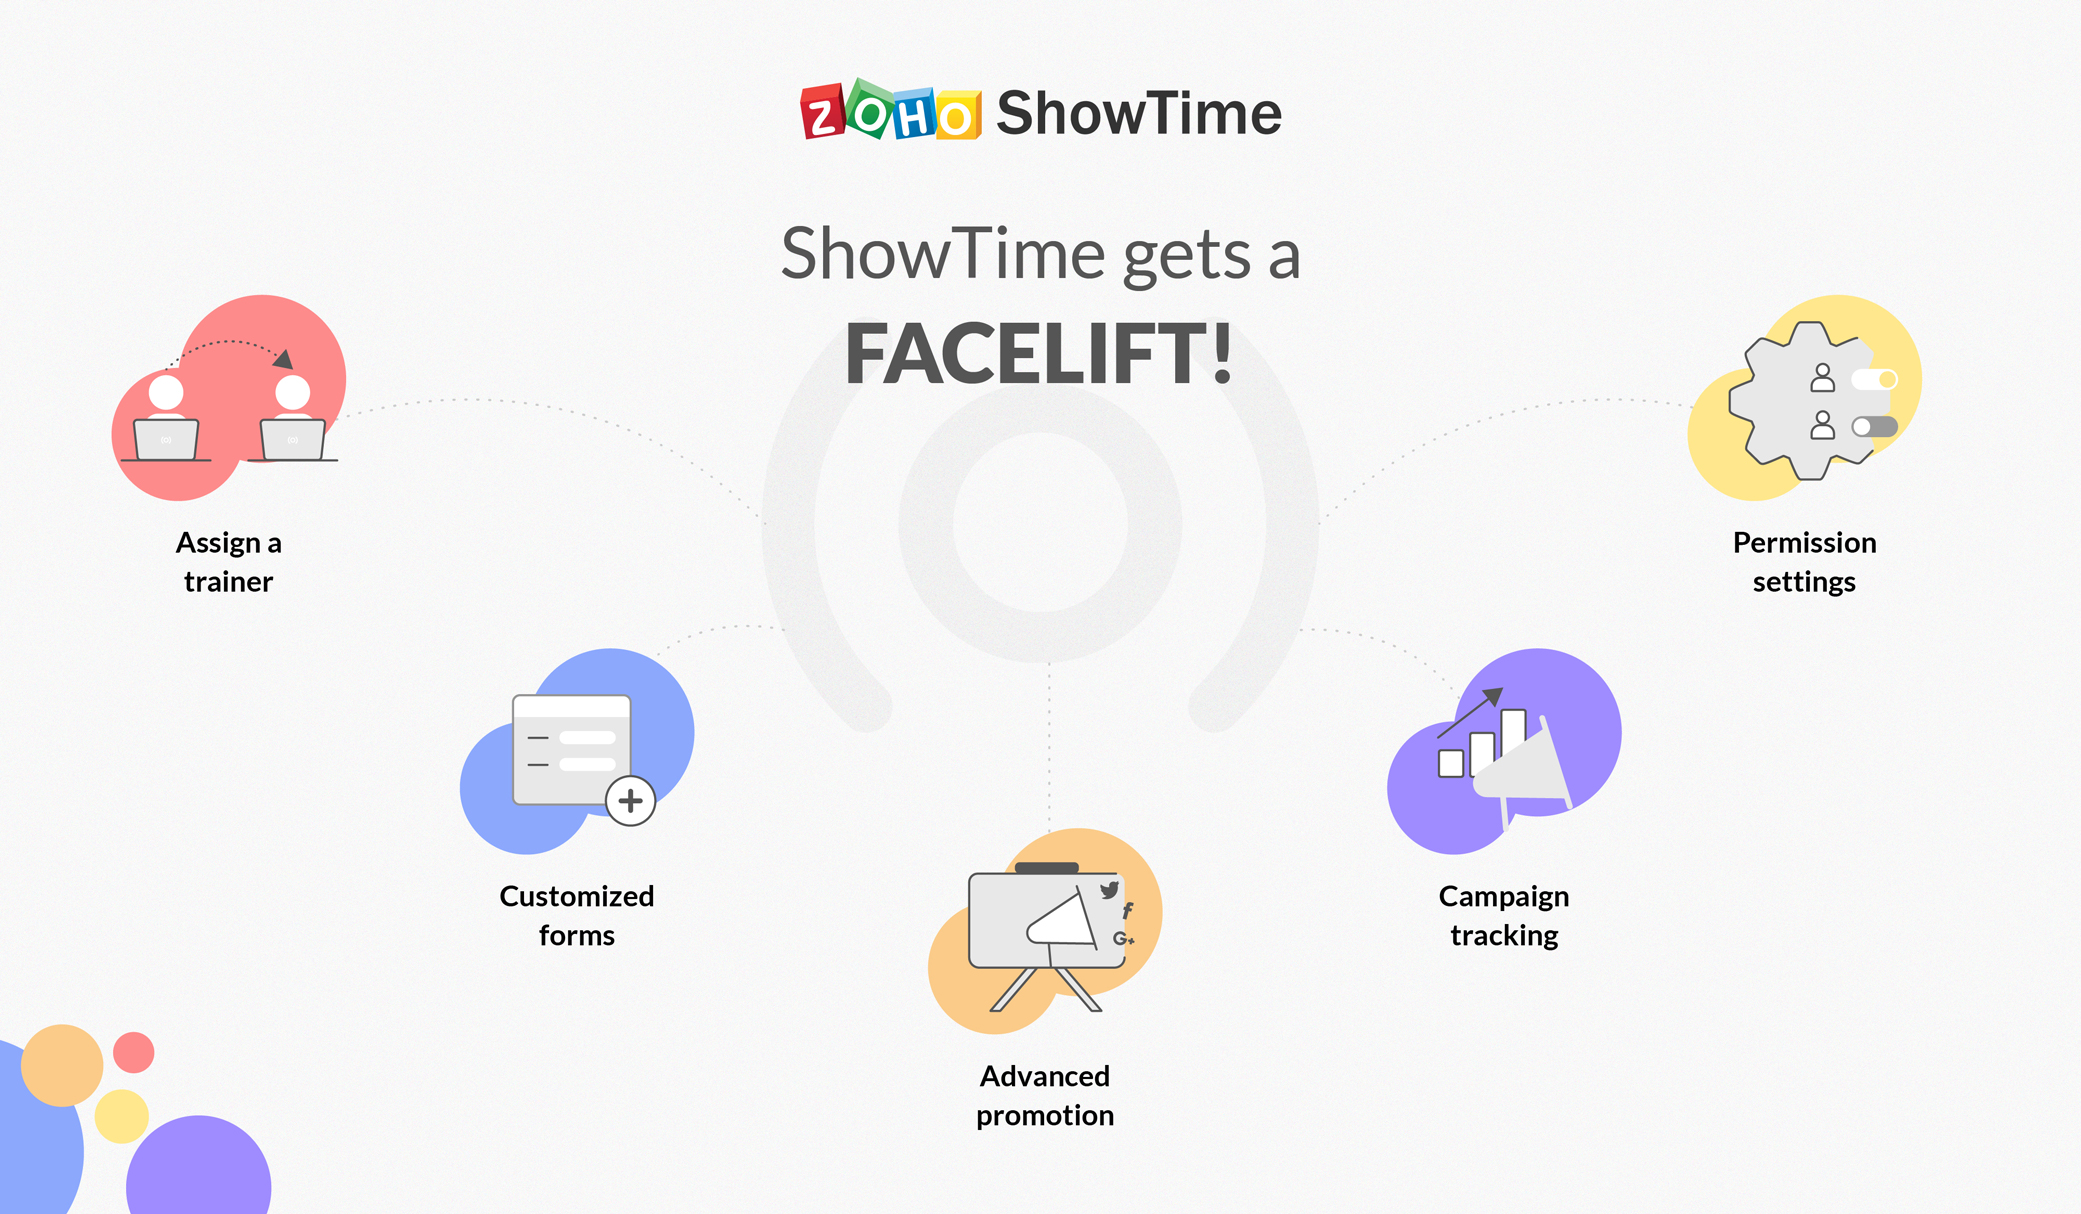 Here are 5 new features that will make your ShowTime experience better